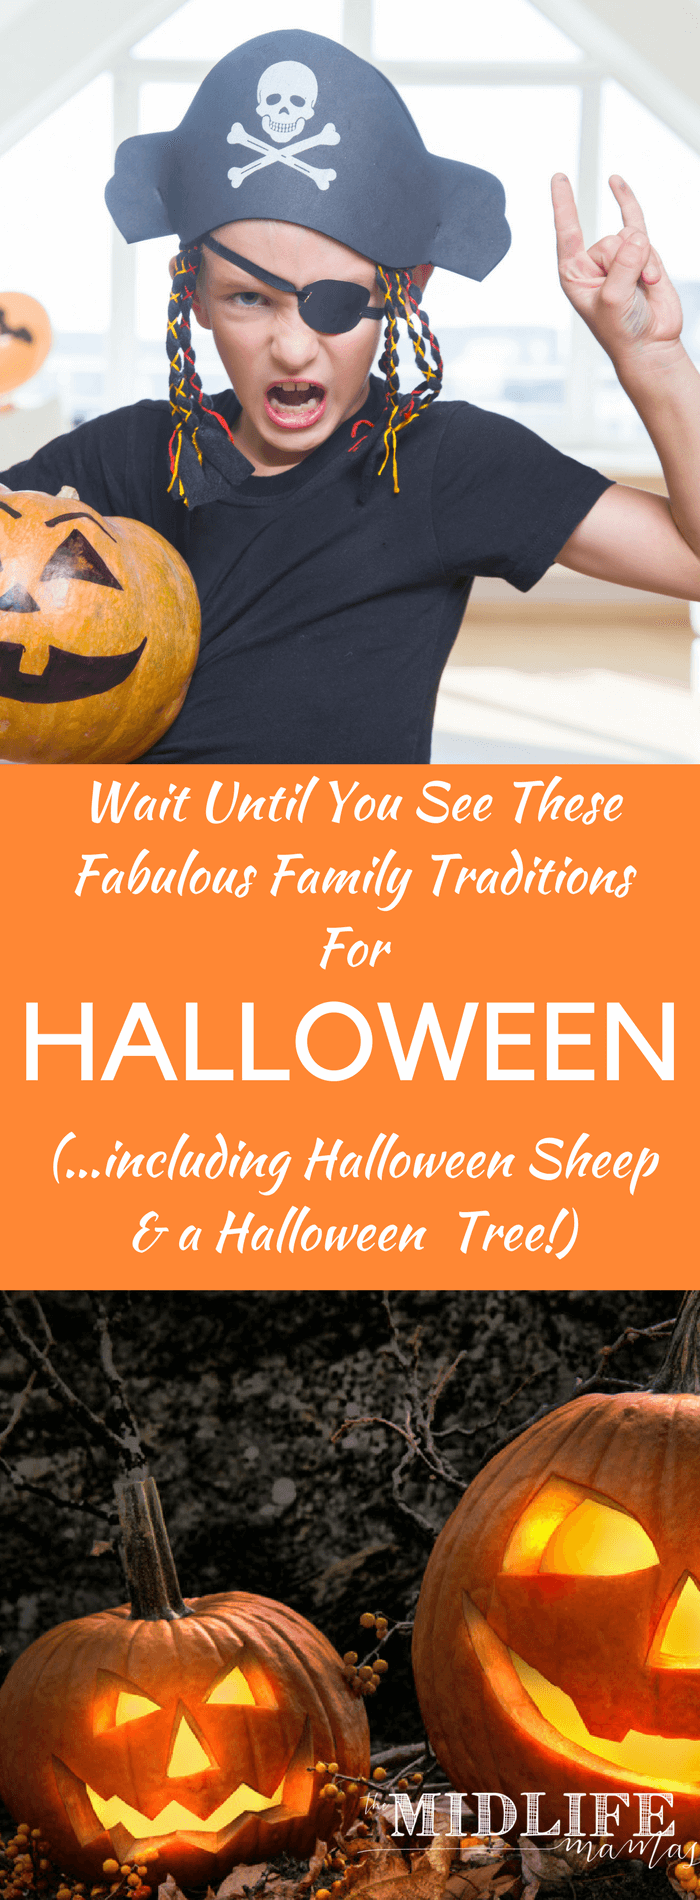 If you're looking for some of the best family traditions for Halloween, I love all these ideas for decorations, art, costumes and fun that have become family traditions for so many families! #familytraditions #Halloween www.themidlifemamas.com